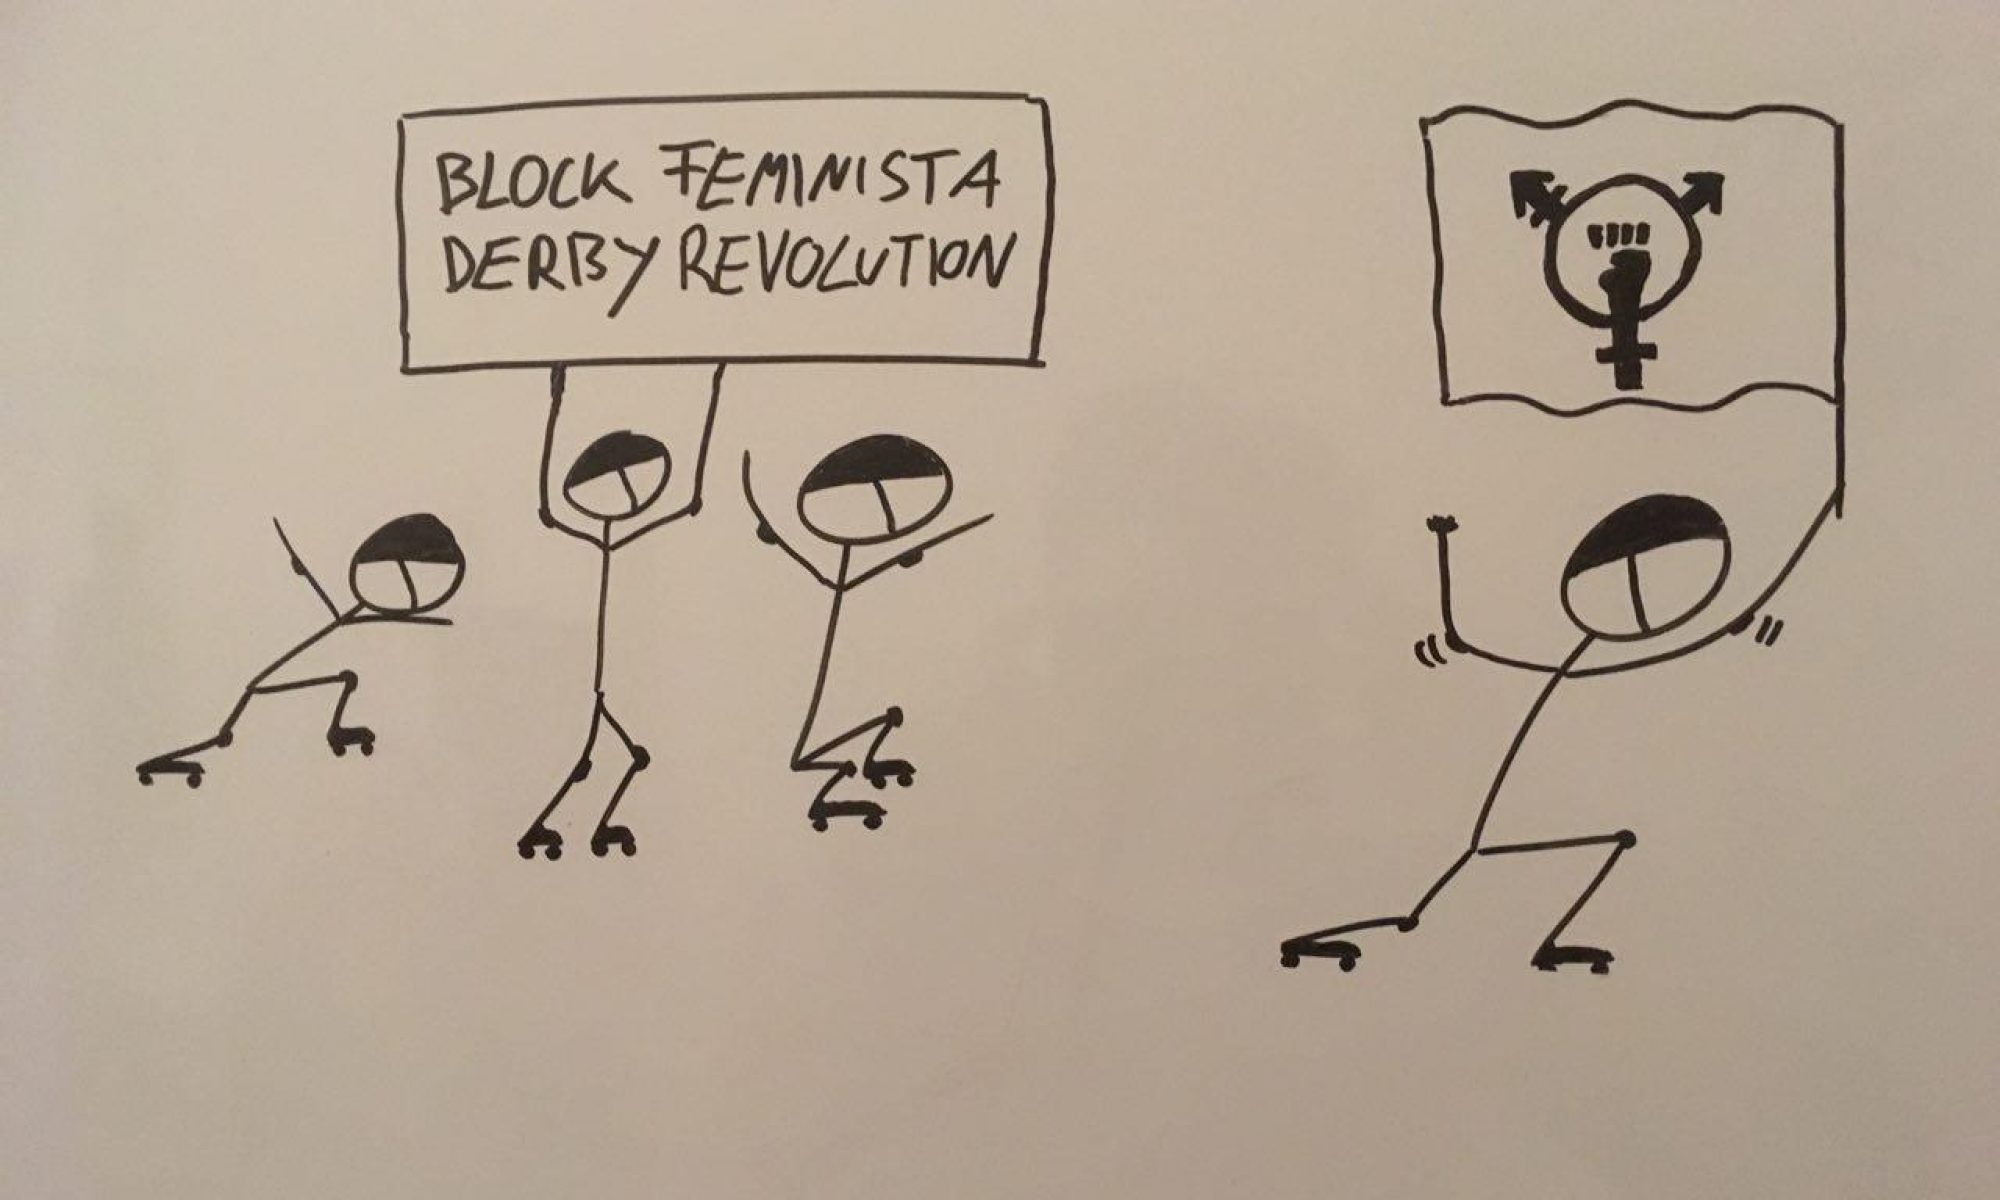 Block Feminista Derby Revolution